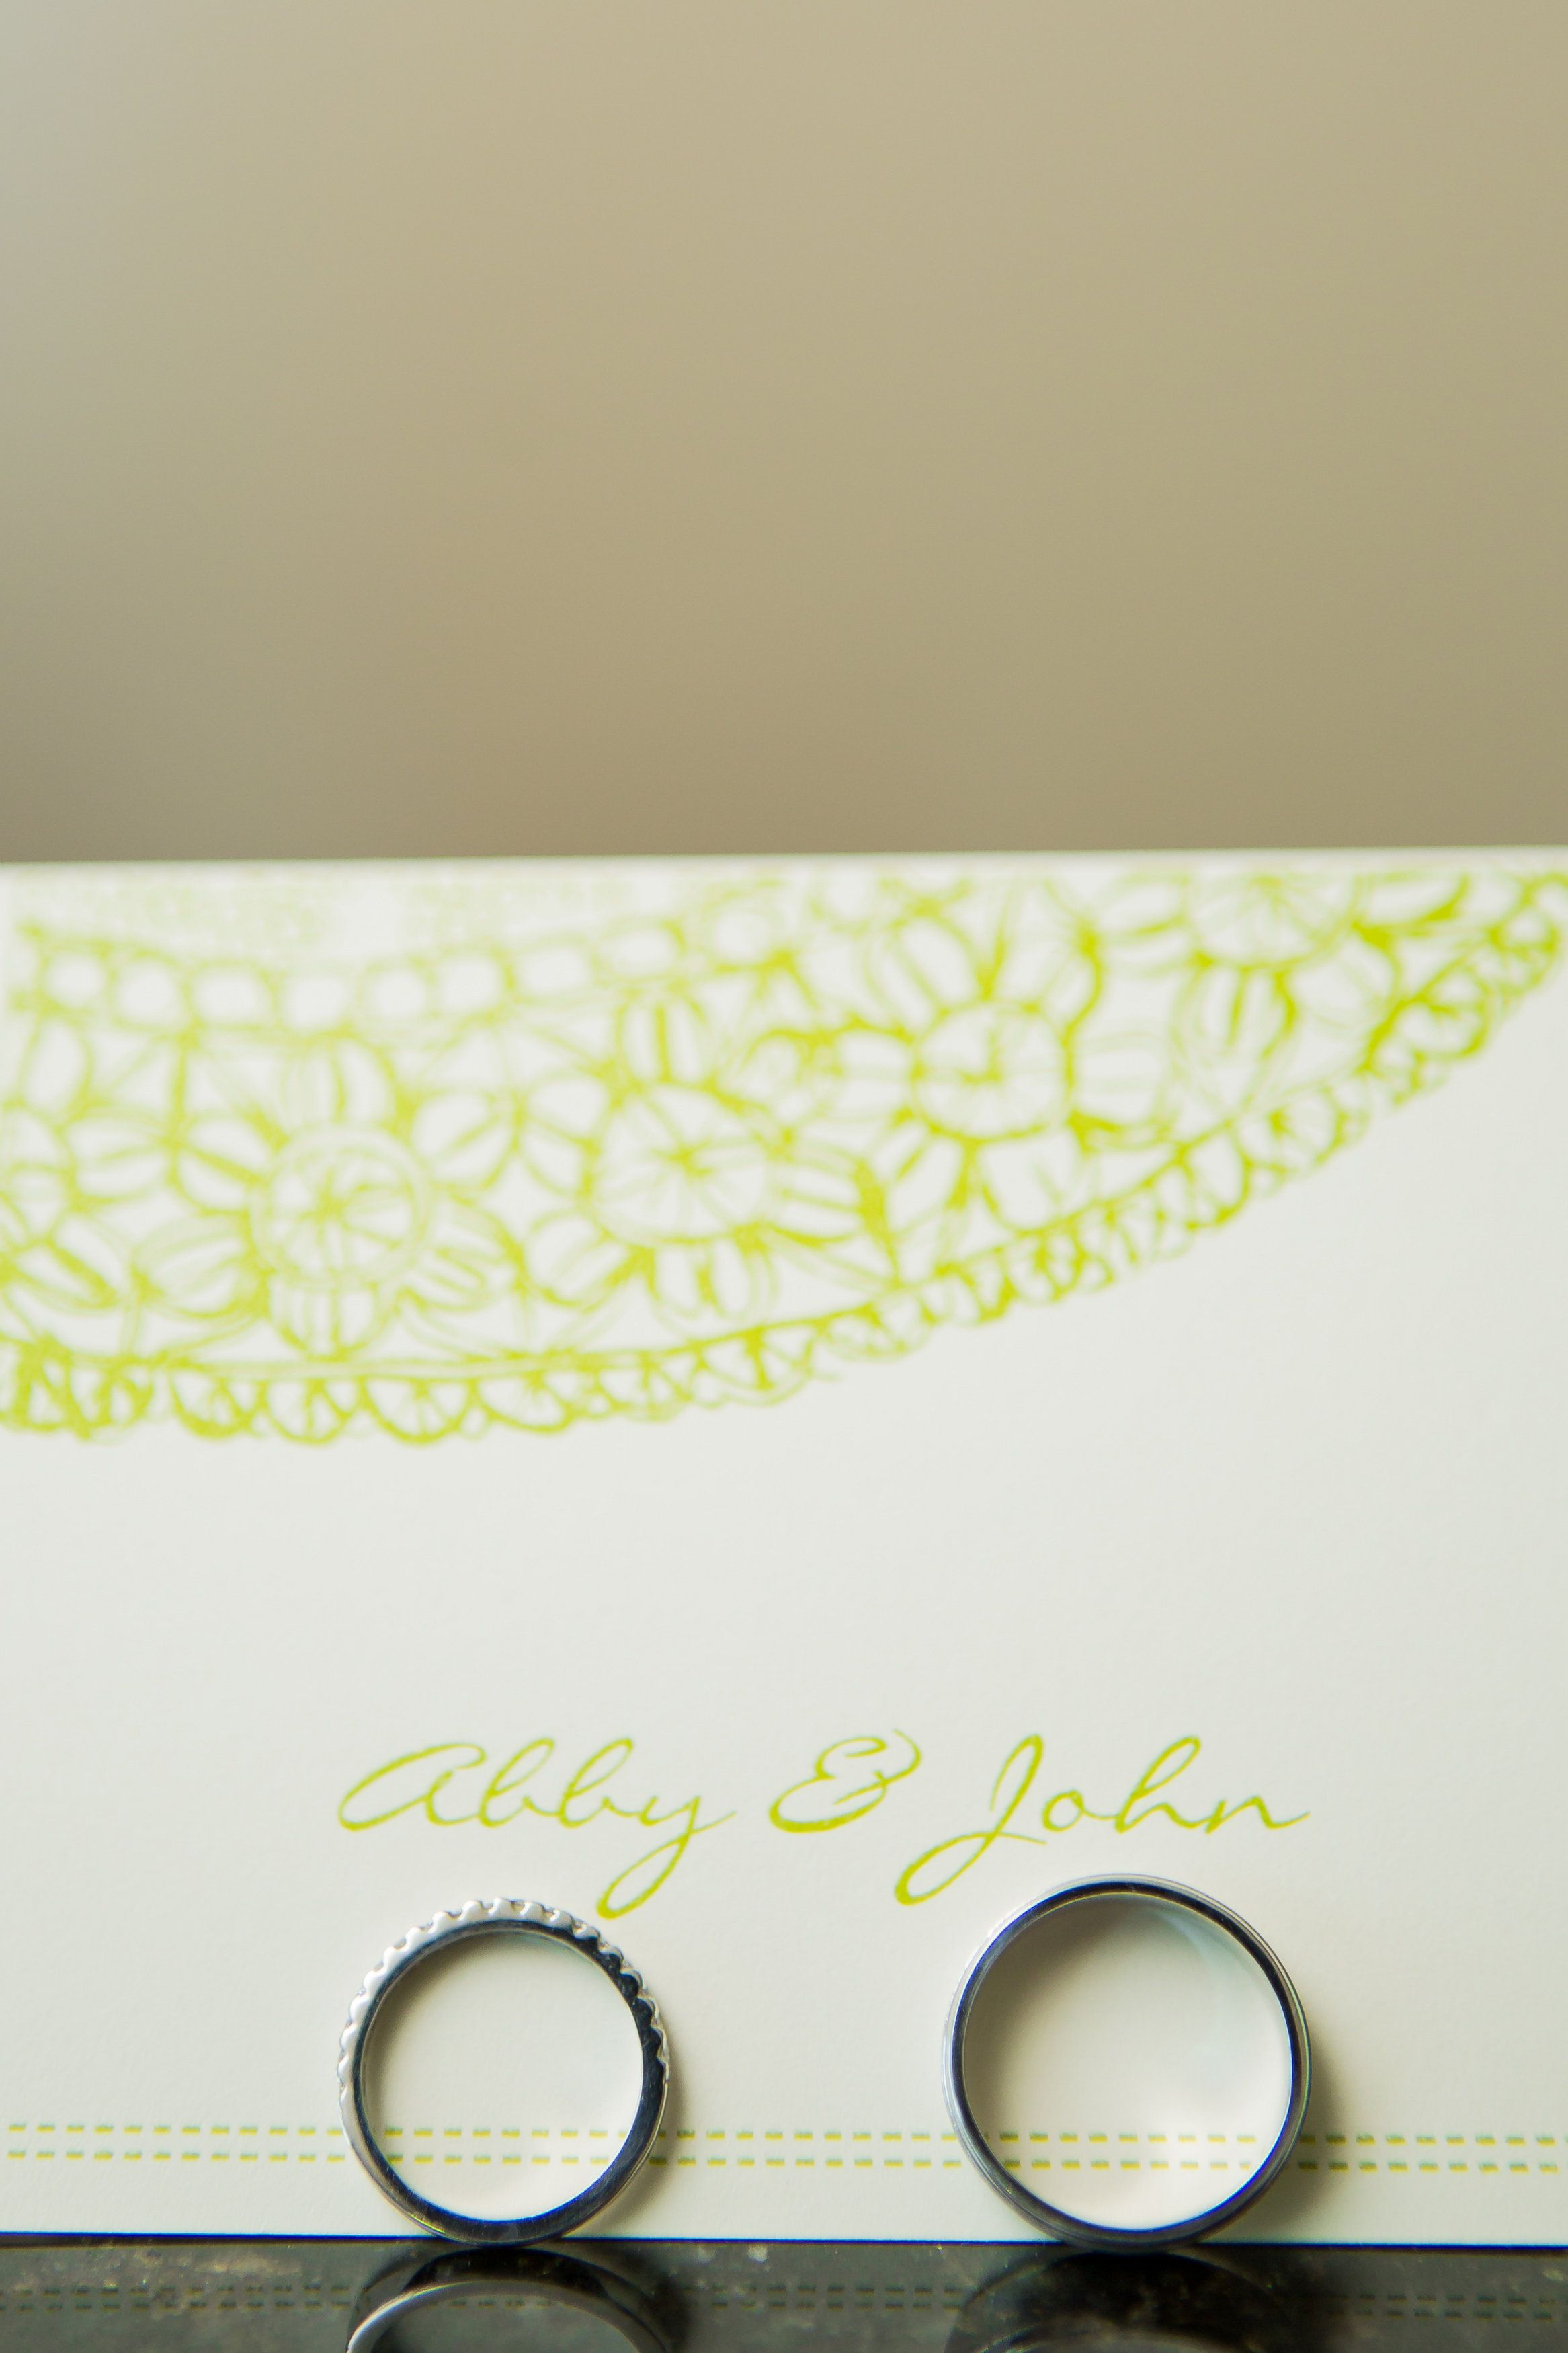 wedding invitation, paper goods, stationary, abby & john, names, wedding bands, wedding photography :: Abby + John's Wedding at 173 Carlyle House in Norcross, GA :: with Tyler